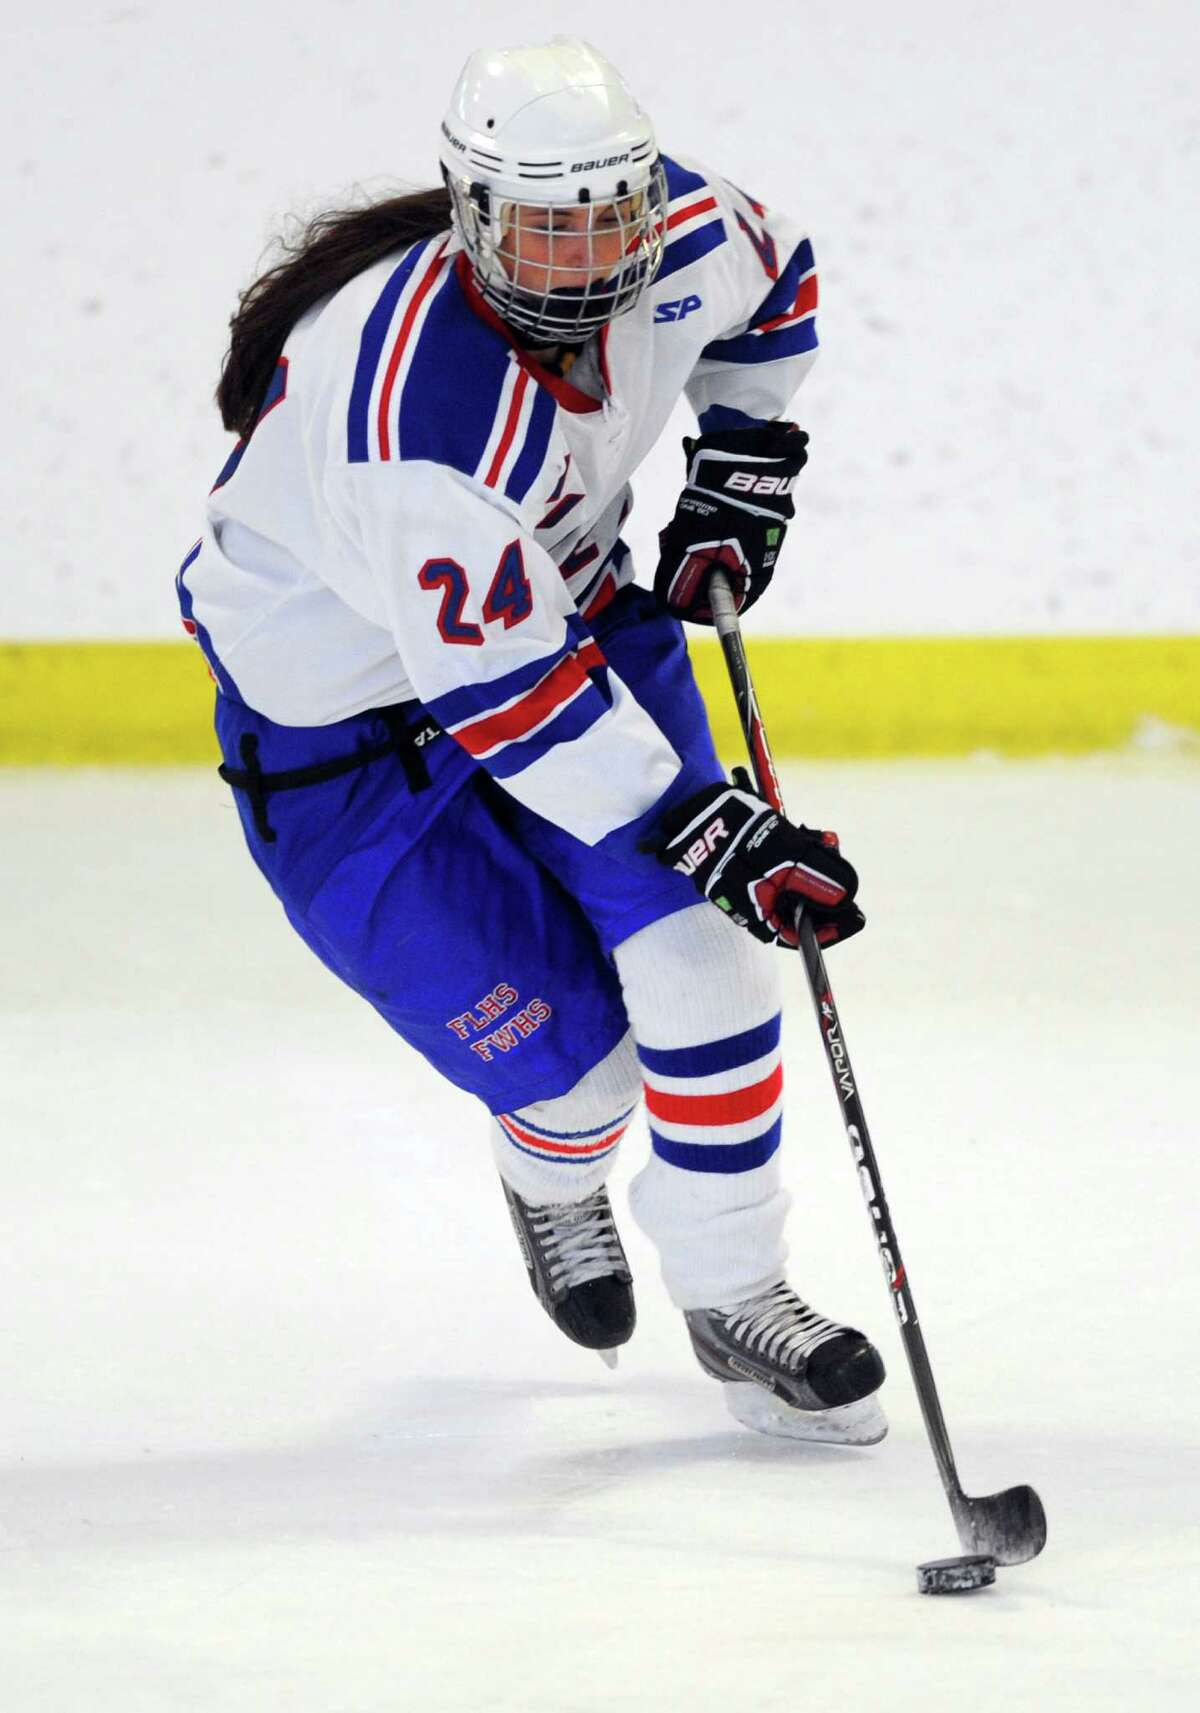 Fairfield Warde/Ludlowe's Gabby Bochenczyk controls the puck during their ice hockey game against Notre Dame-Fairfield at Wonderland of Ice in Bridgeport, Conn. Wednesday, Feb. 20, 2013.